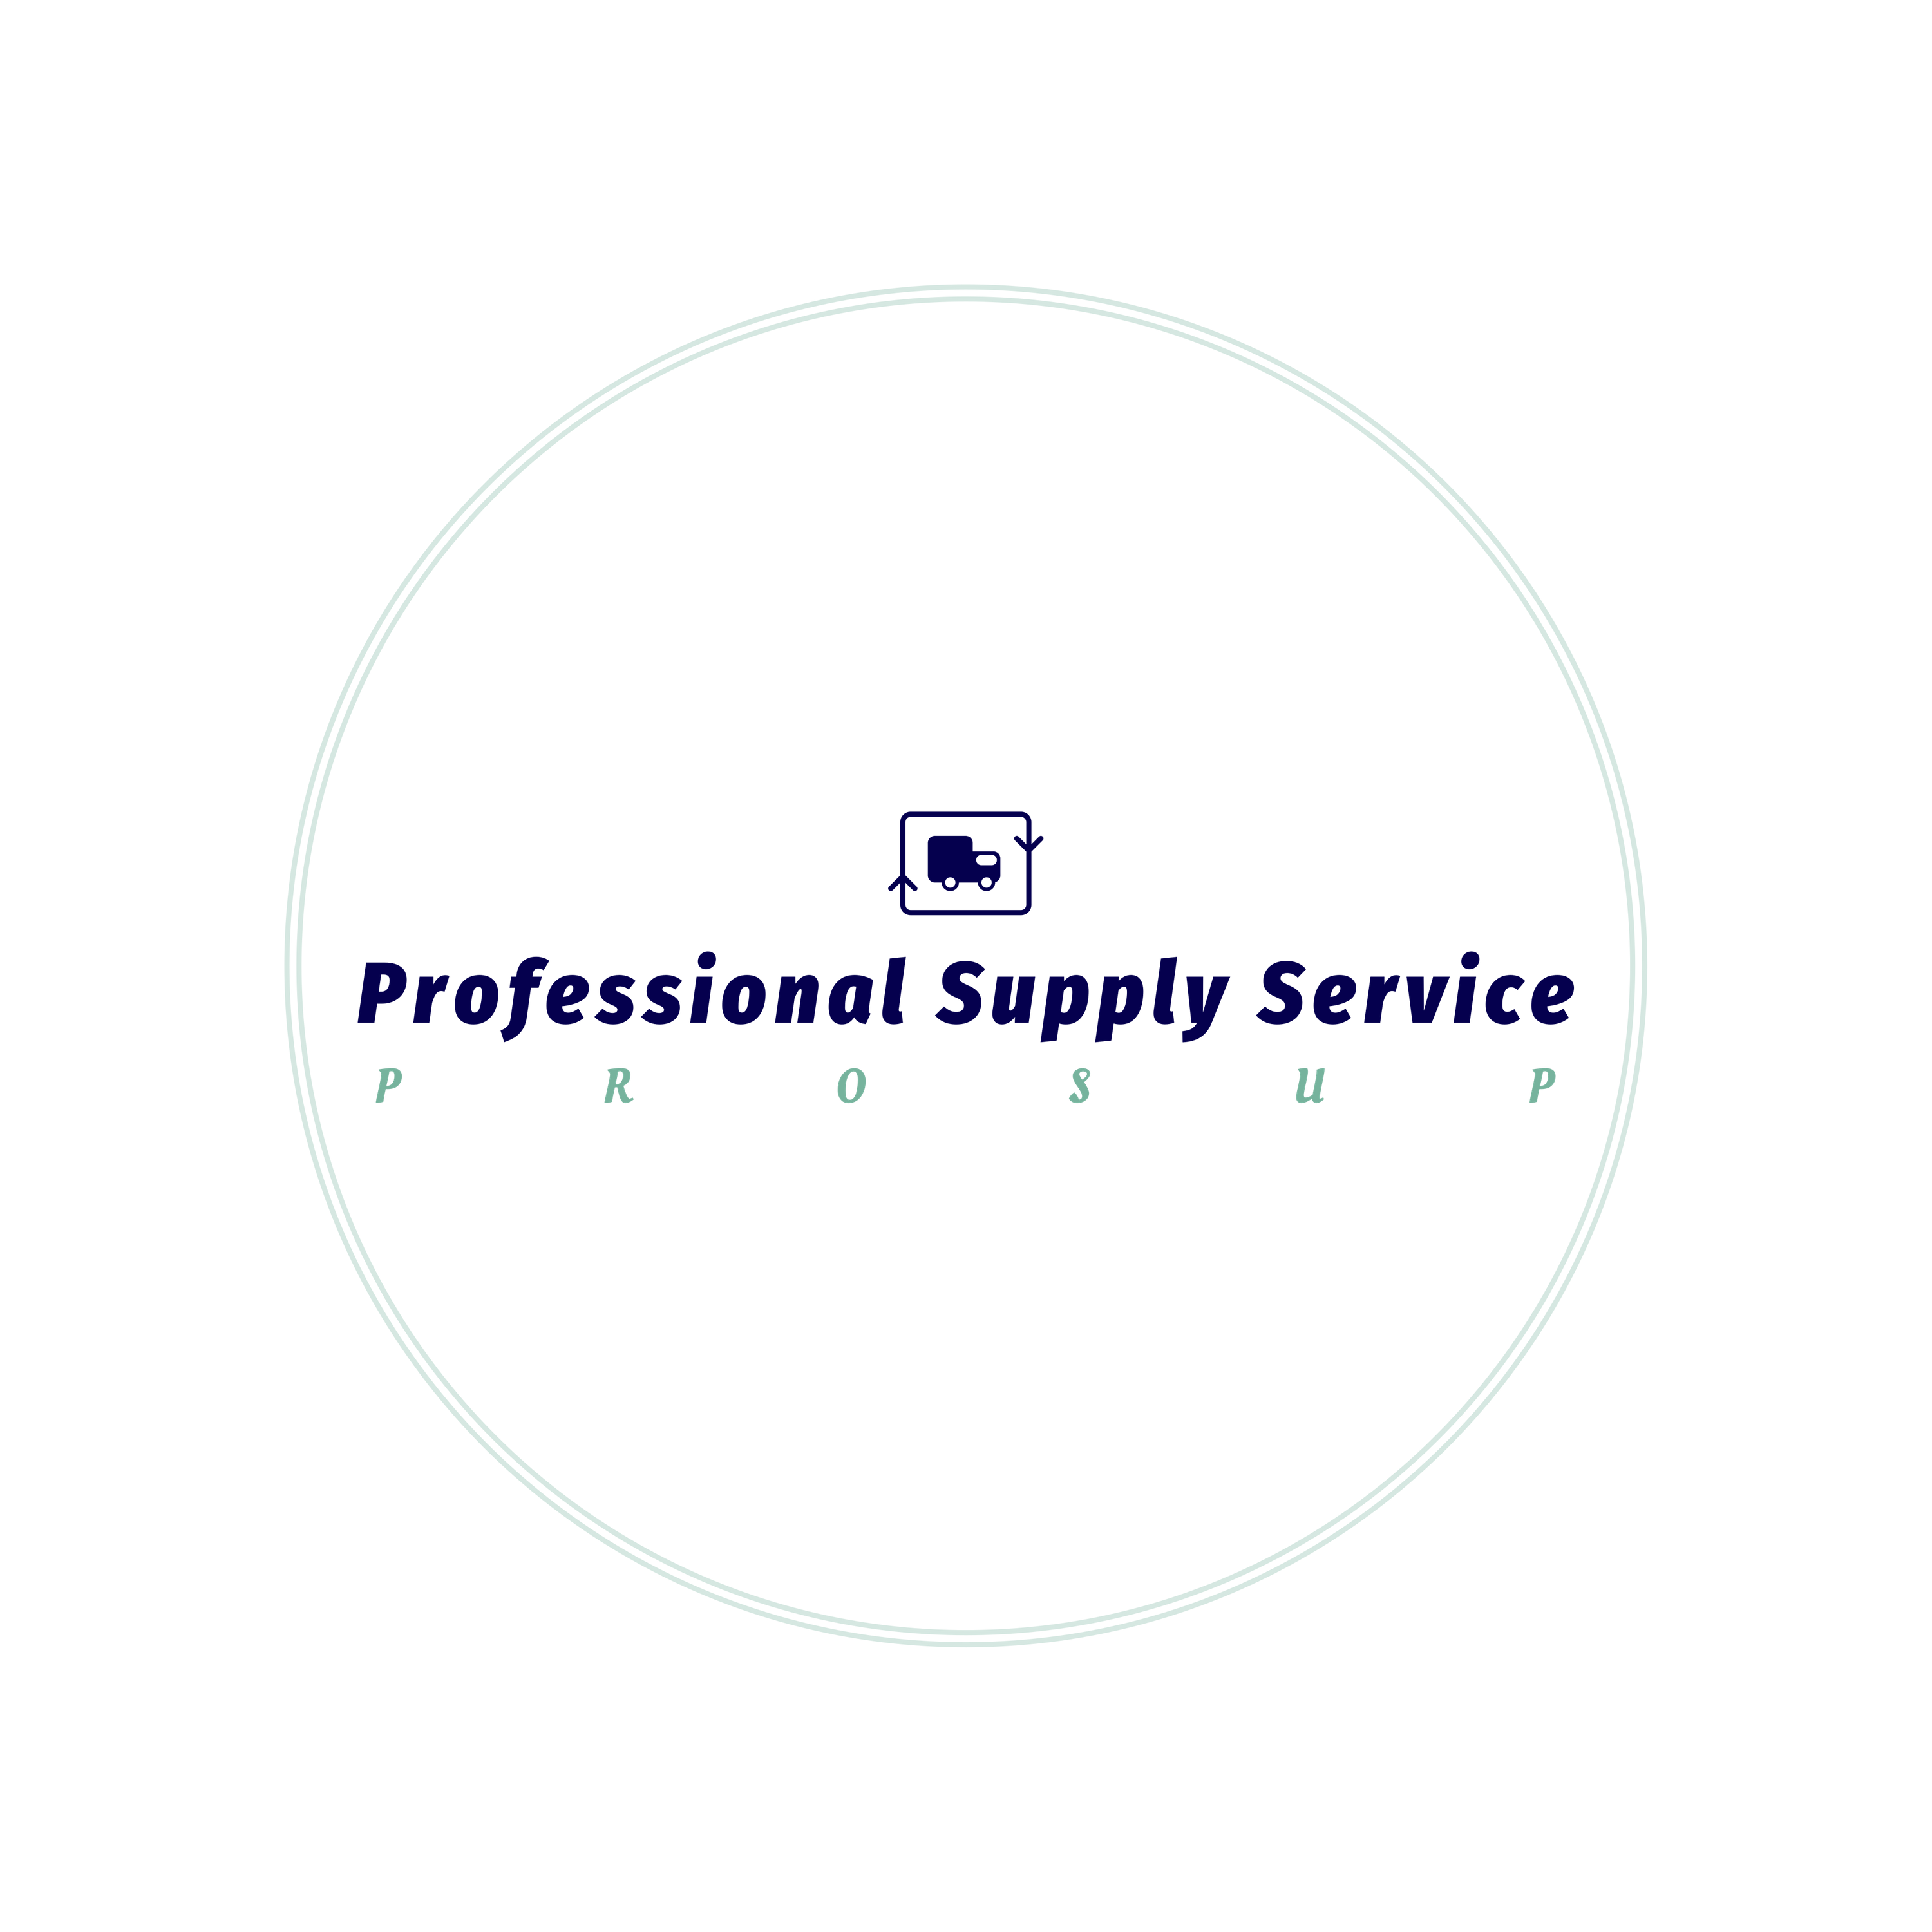 Professional Supply Service